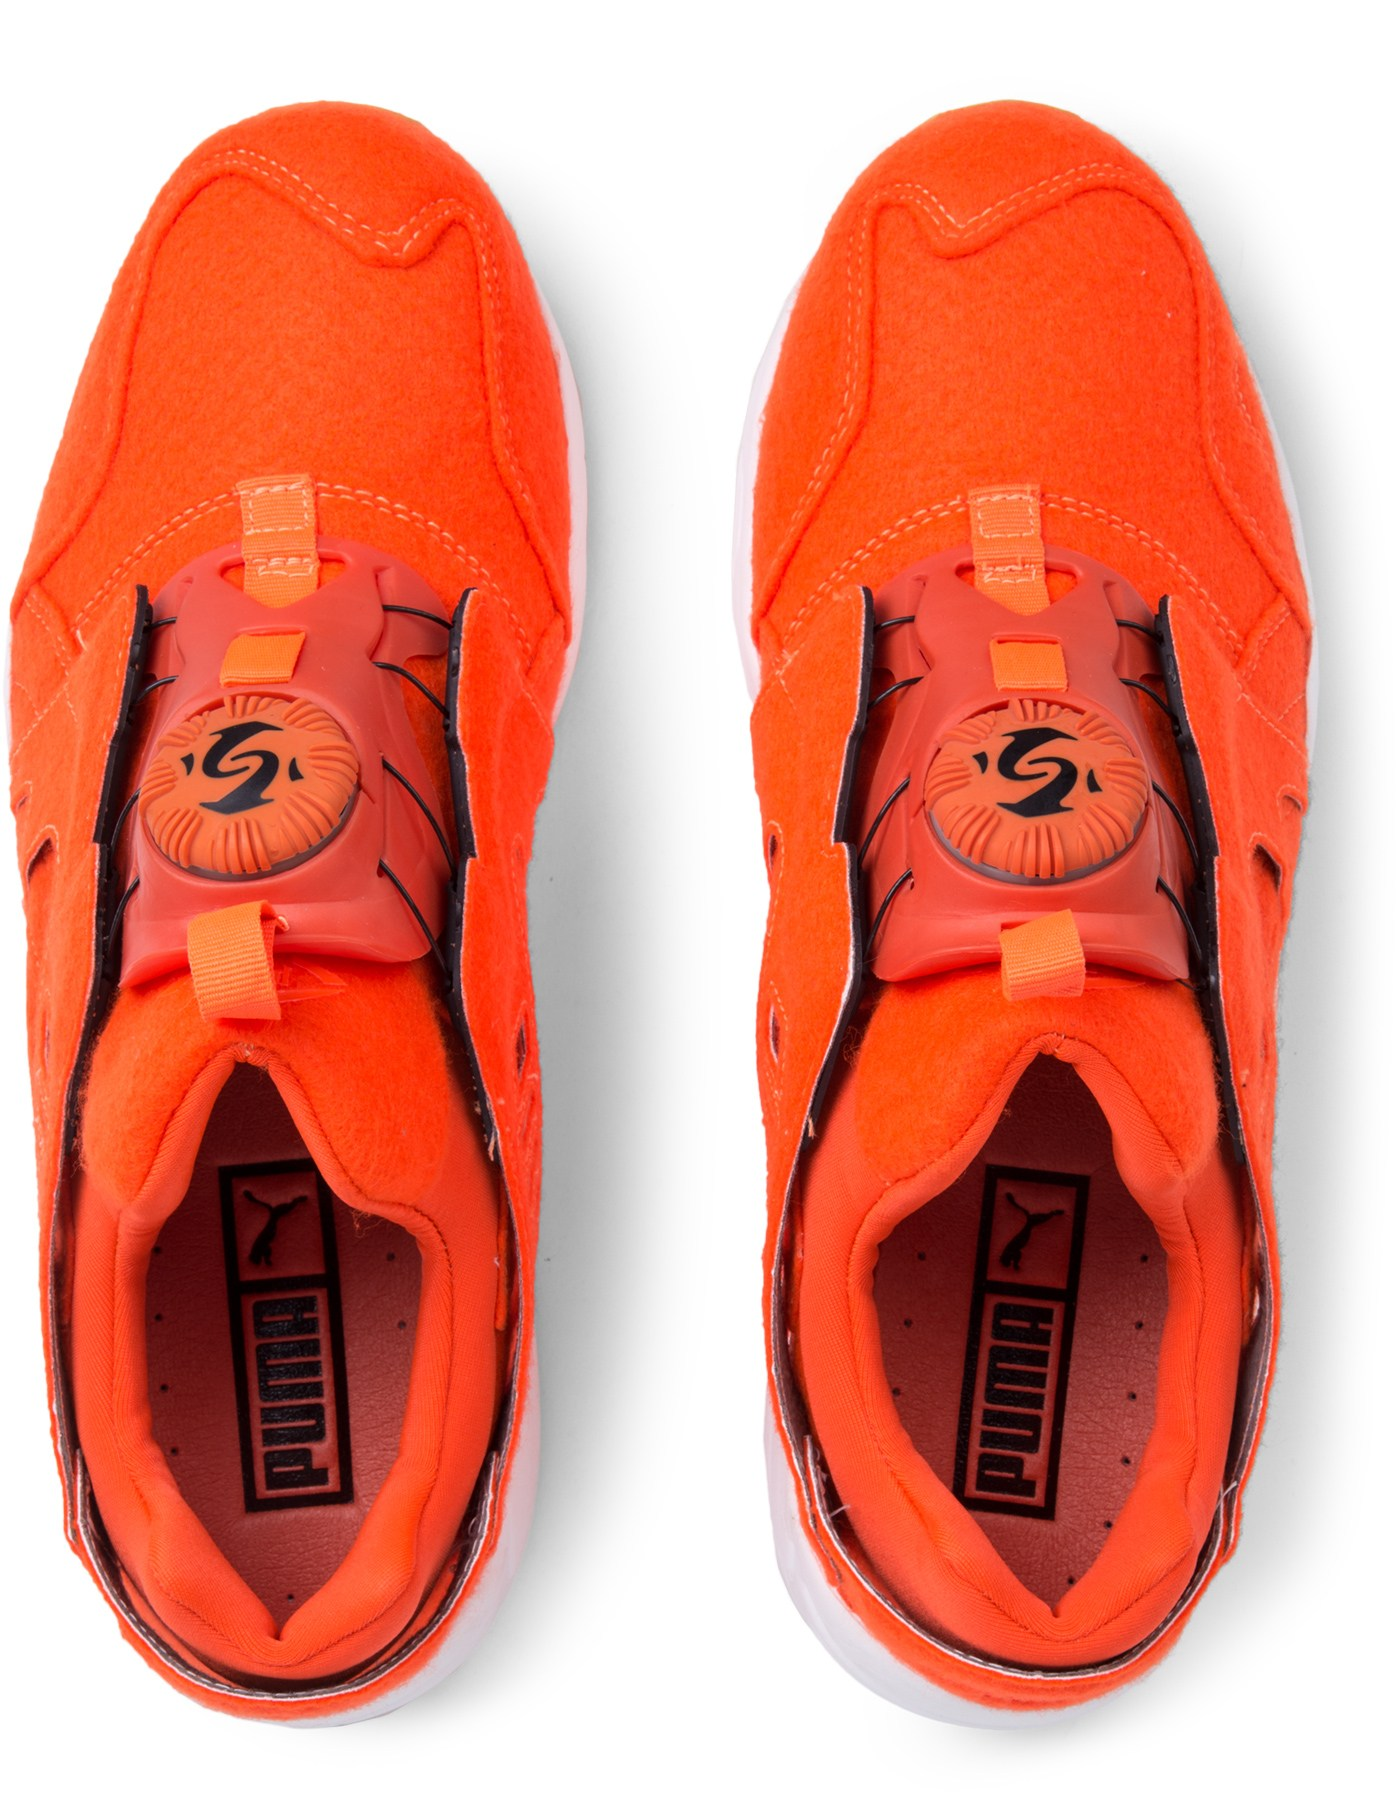 huge selection of ae8ec 6d841 ... Puma Orange Disc Blaze Bright ...